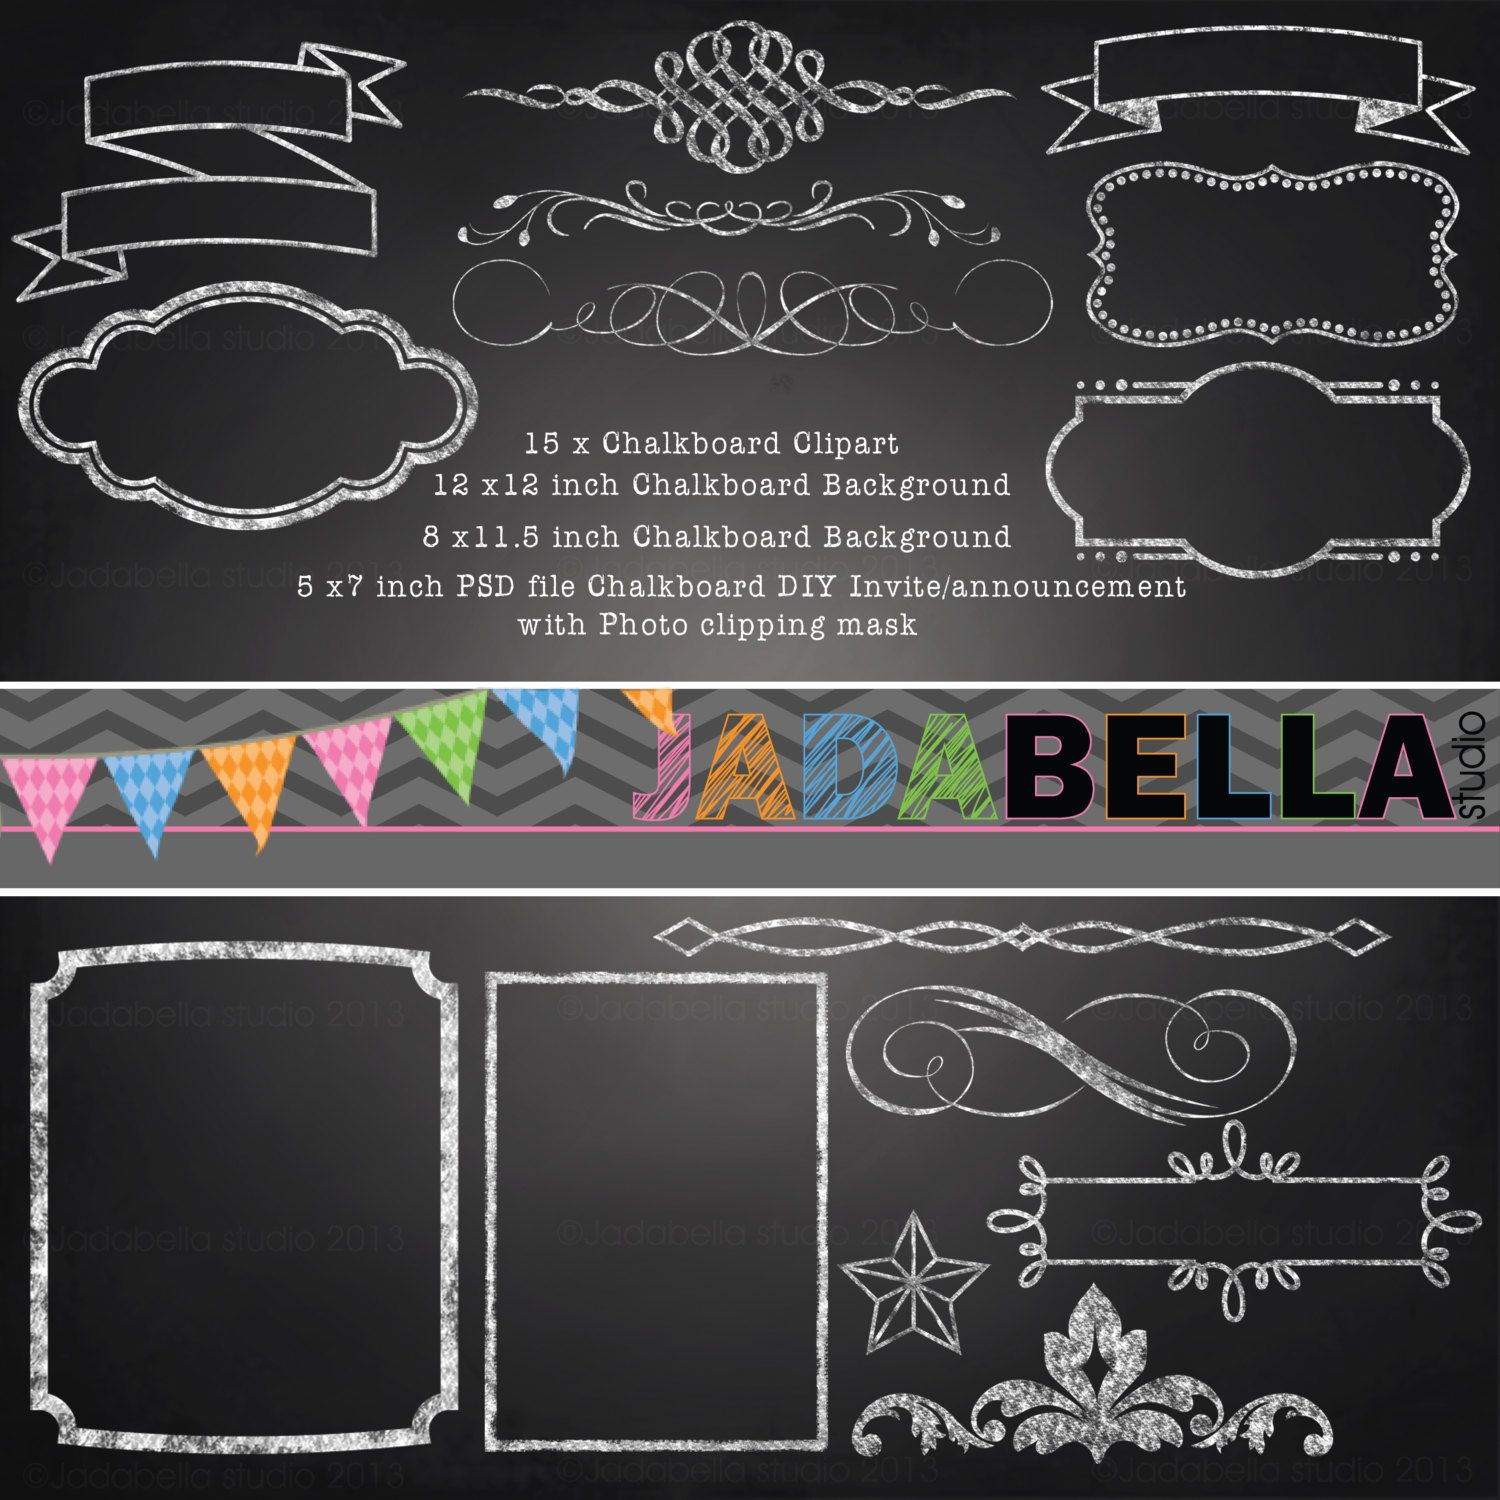 Instant Download Set of 15 Chalkboard Clipart 1 Photoshop Template ...